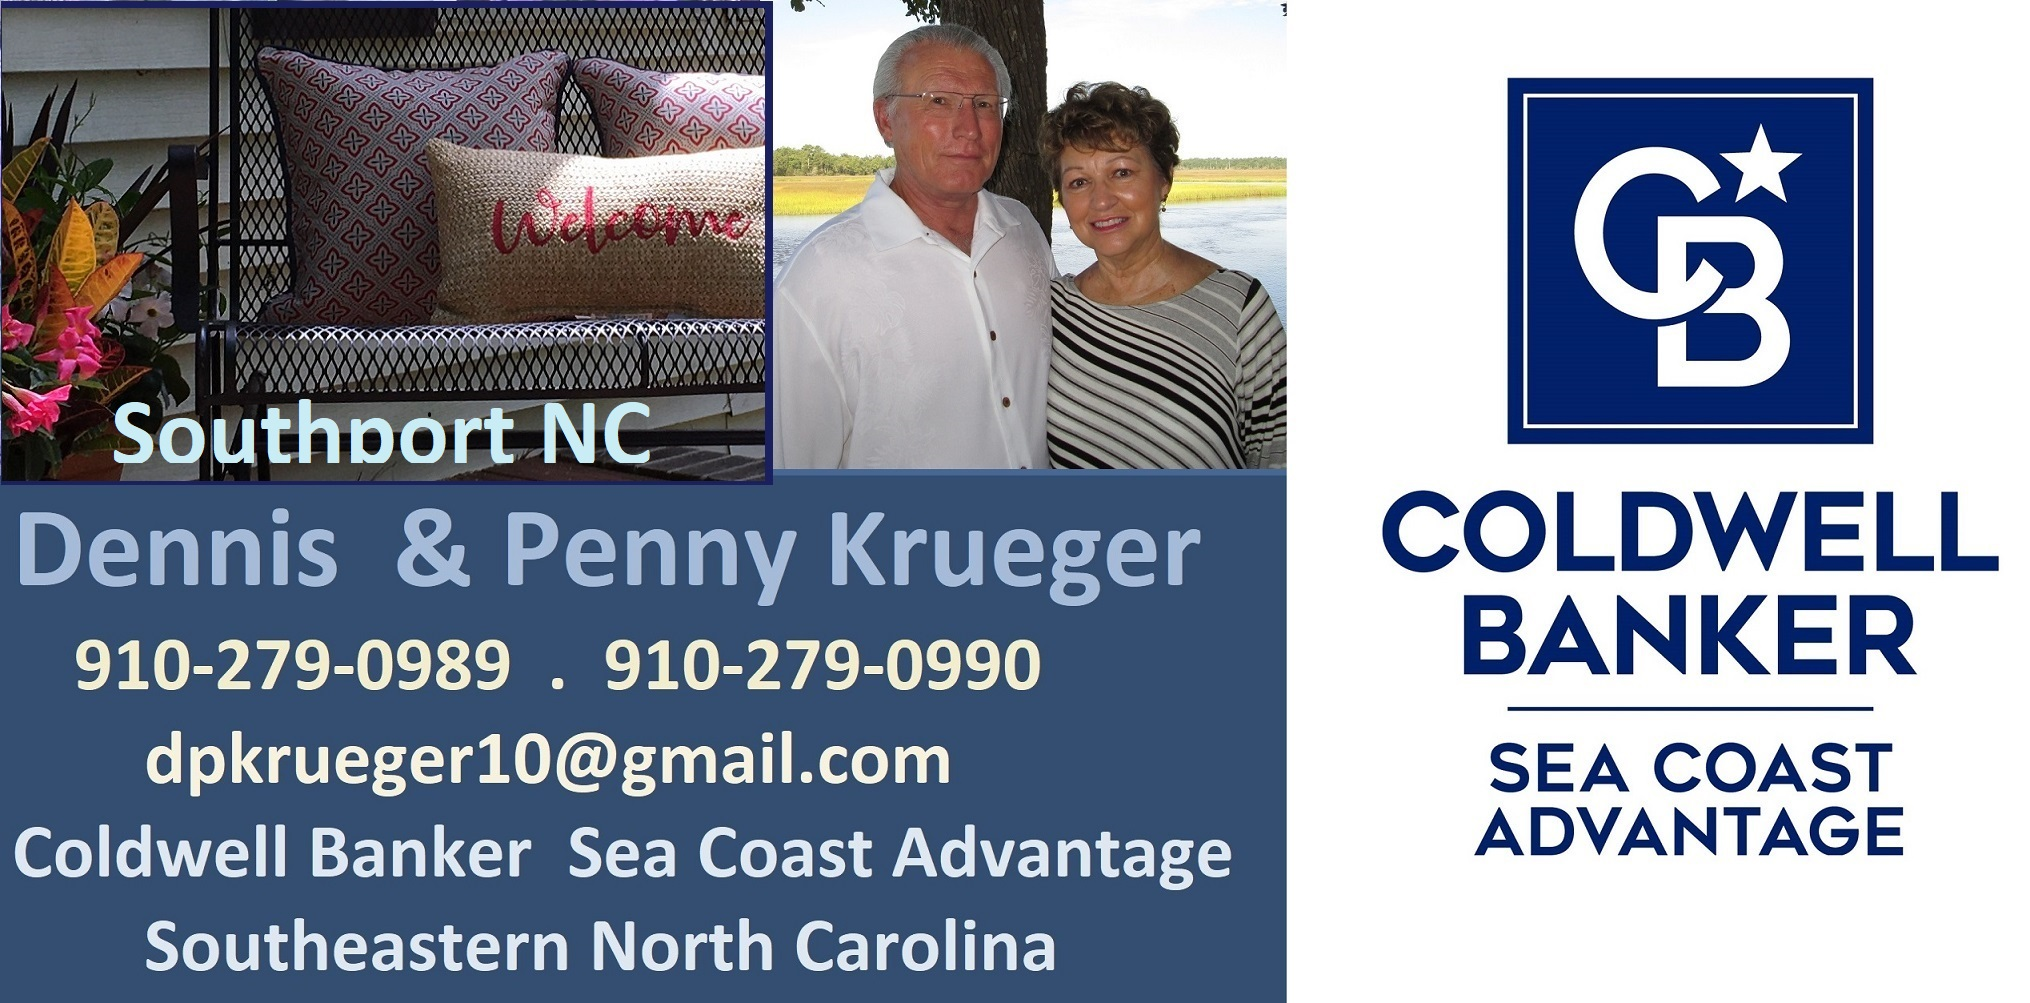 Southport NC Real Estate Coldwell Banker Sea Coast Advantage